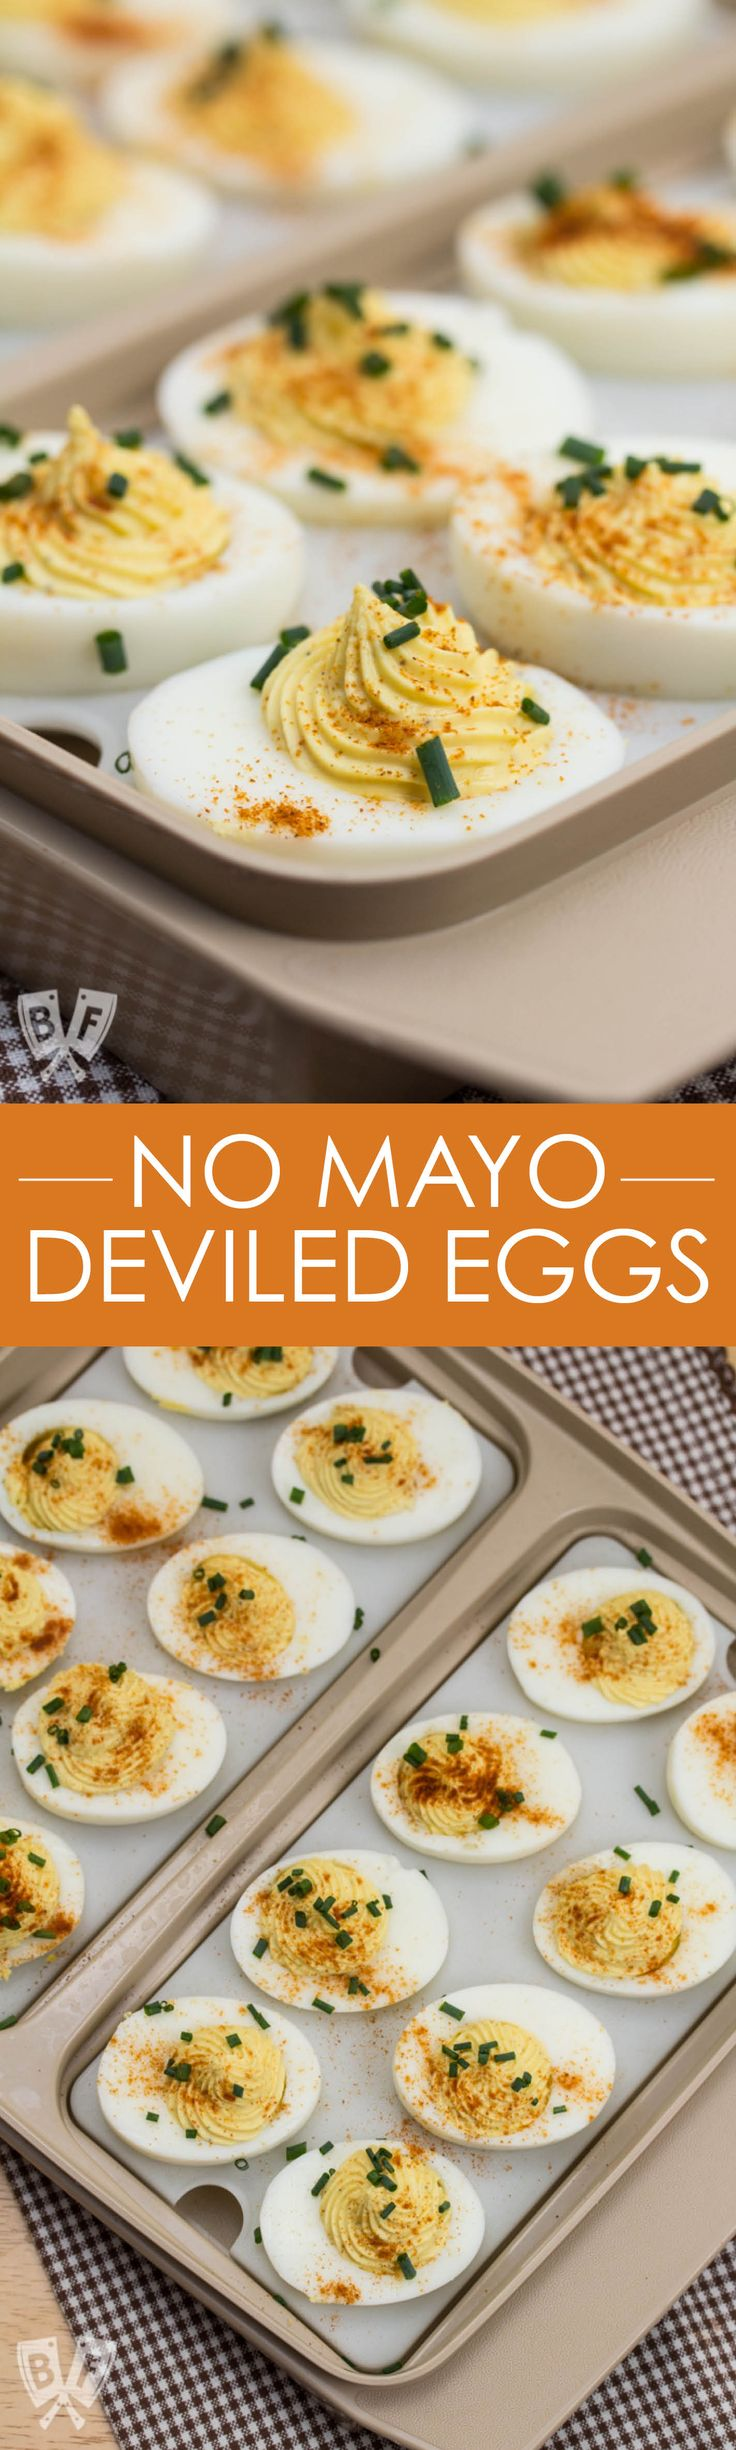 This easy to make, classic deviled egg recipe is a bite-sized party appetizer favorite! Perfect for game day, holiday gatherings, and dinner parties. Made with pantry staples - no mayo needed! | No Mayo Deviled Eggs | #partyfood #superbowl #gameday #deviledeggs